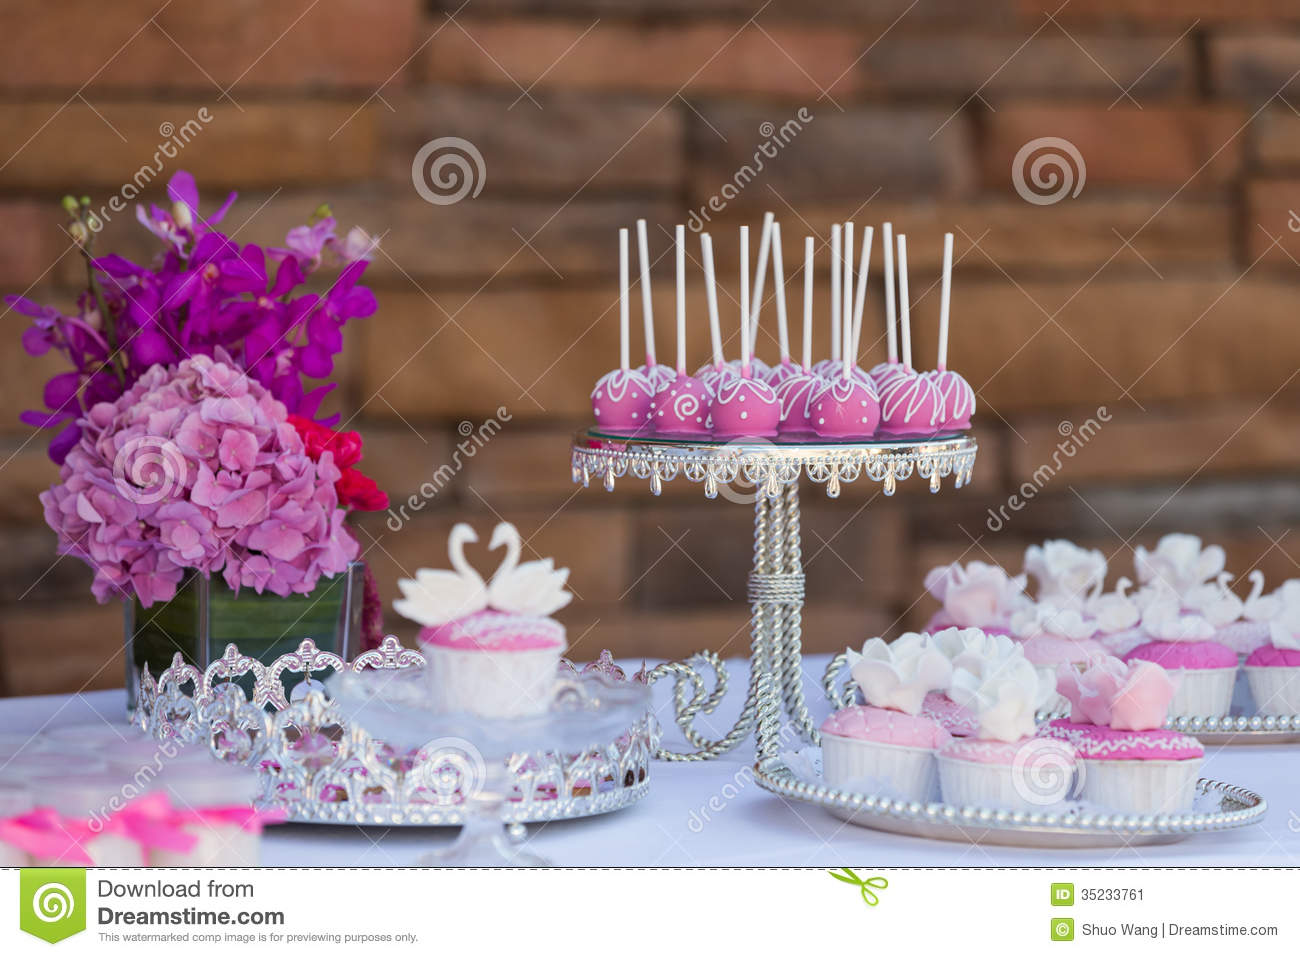 how to make wedding cake pops cake pops and cupcakes stock image image of cake baking 16044